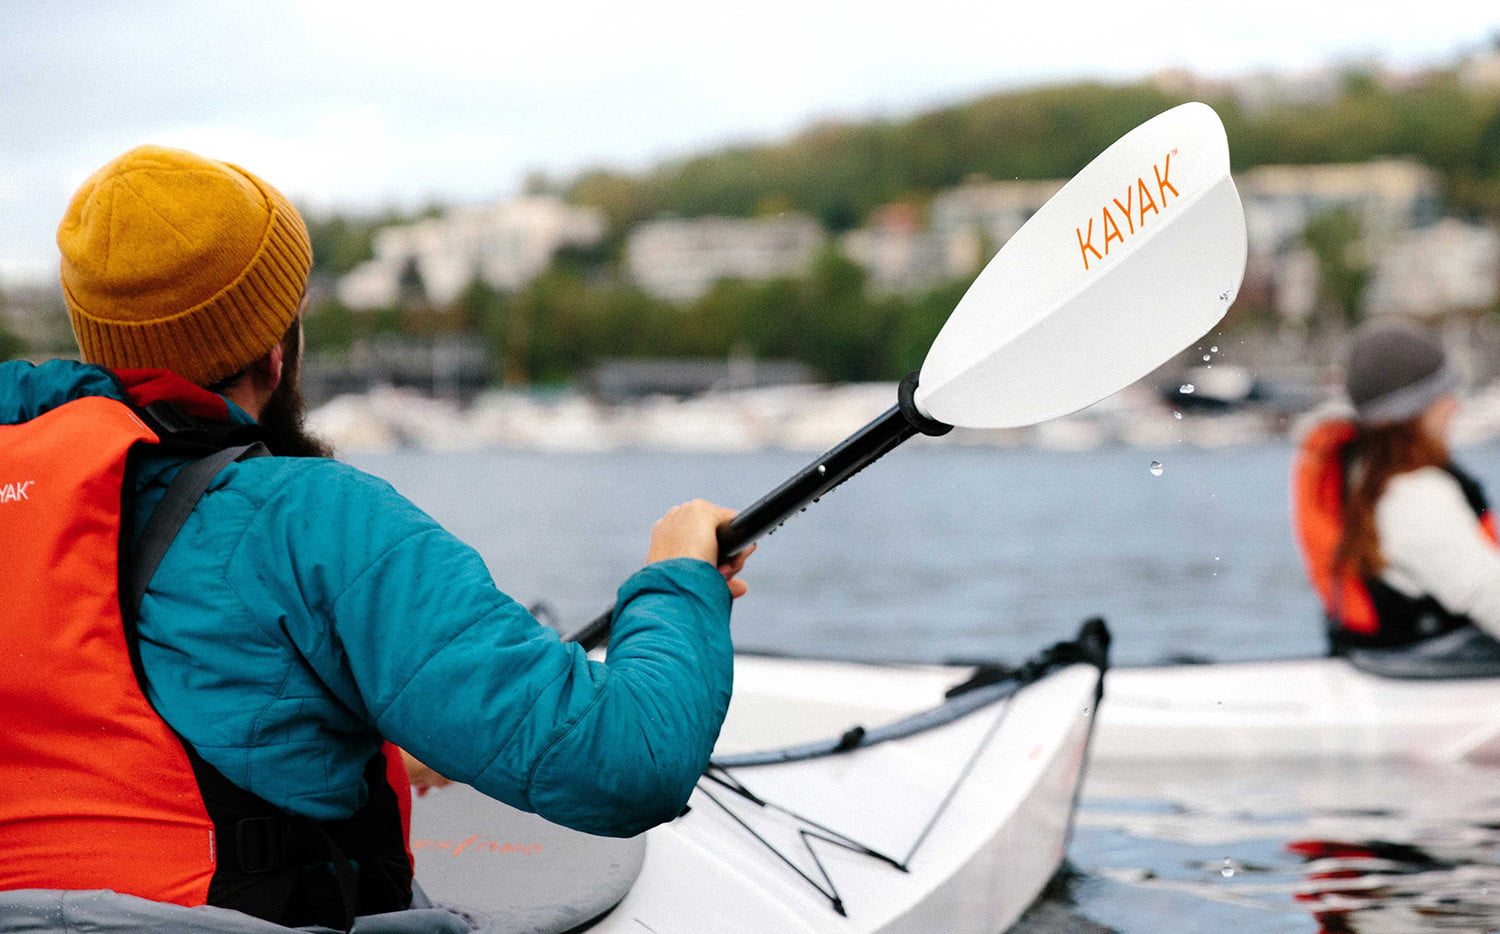 Awesome Tech You Can't Buy Yet: Origami kayaks and AR glasses that aren't dorky